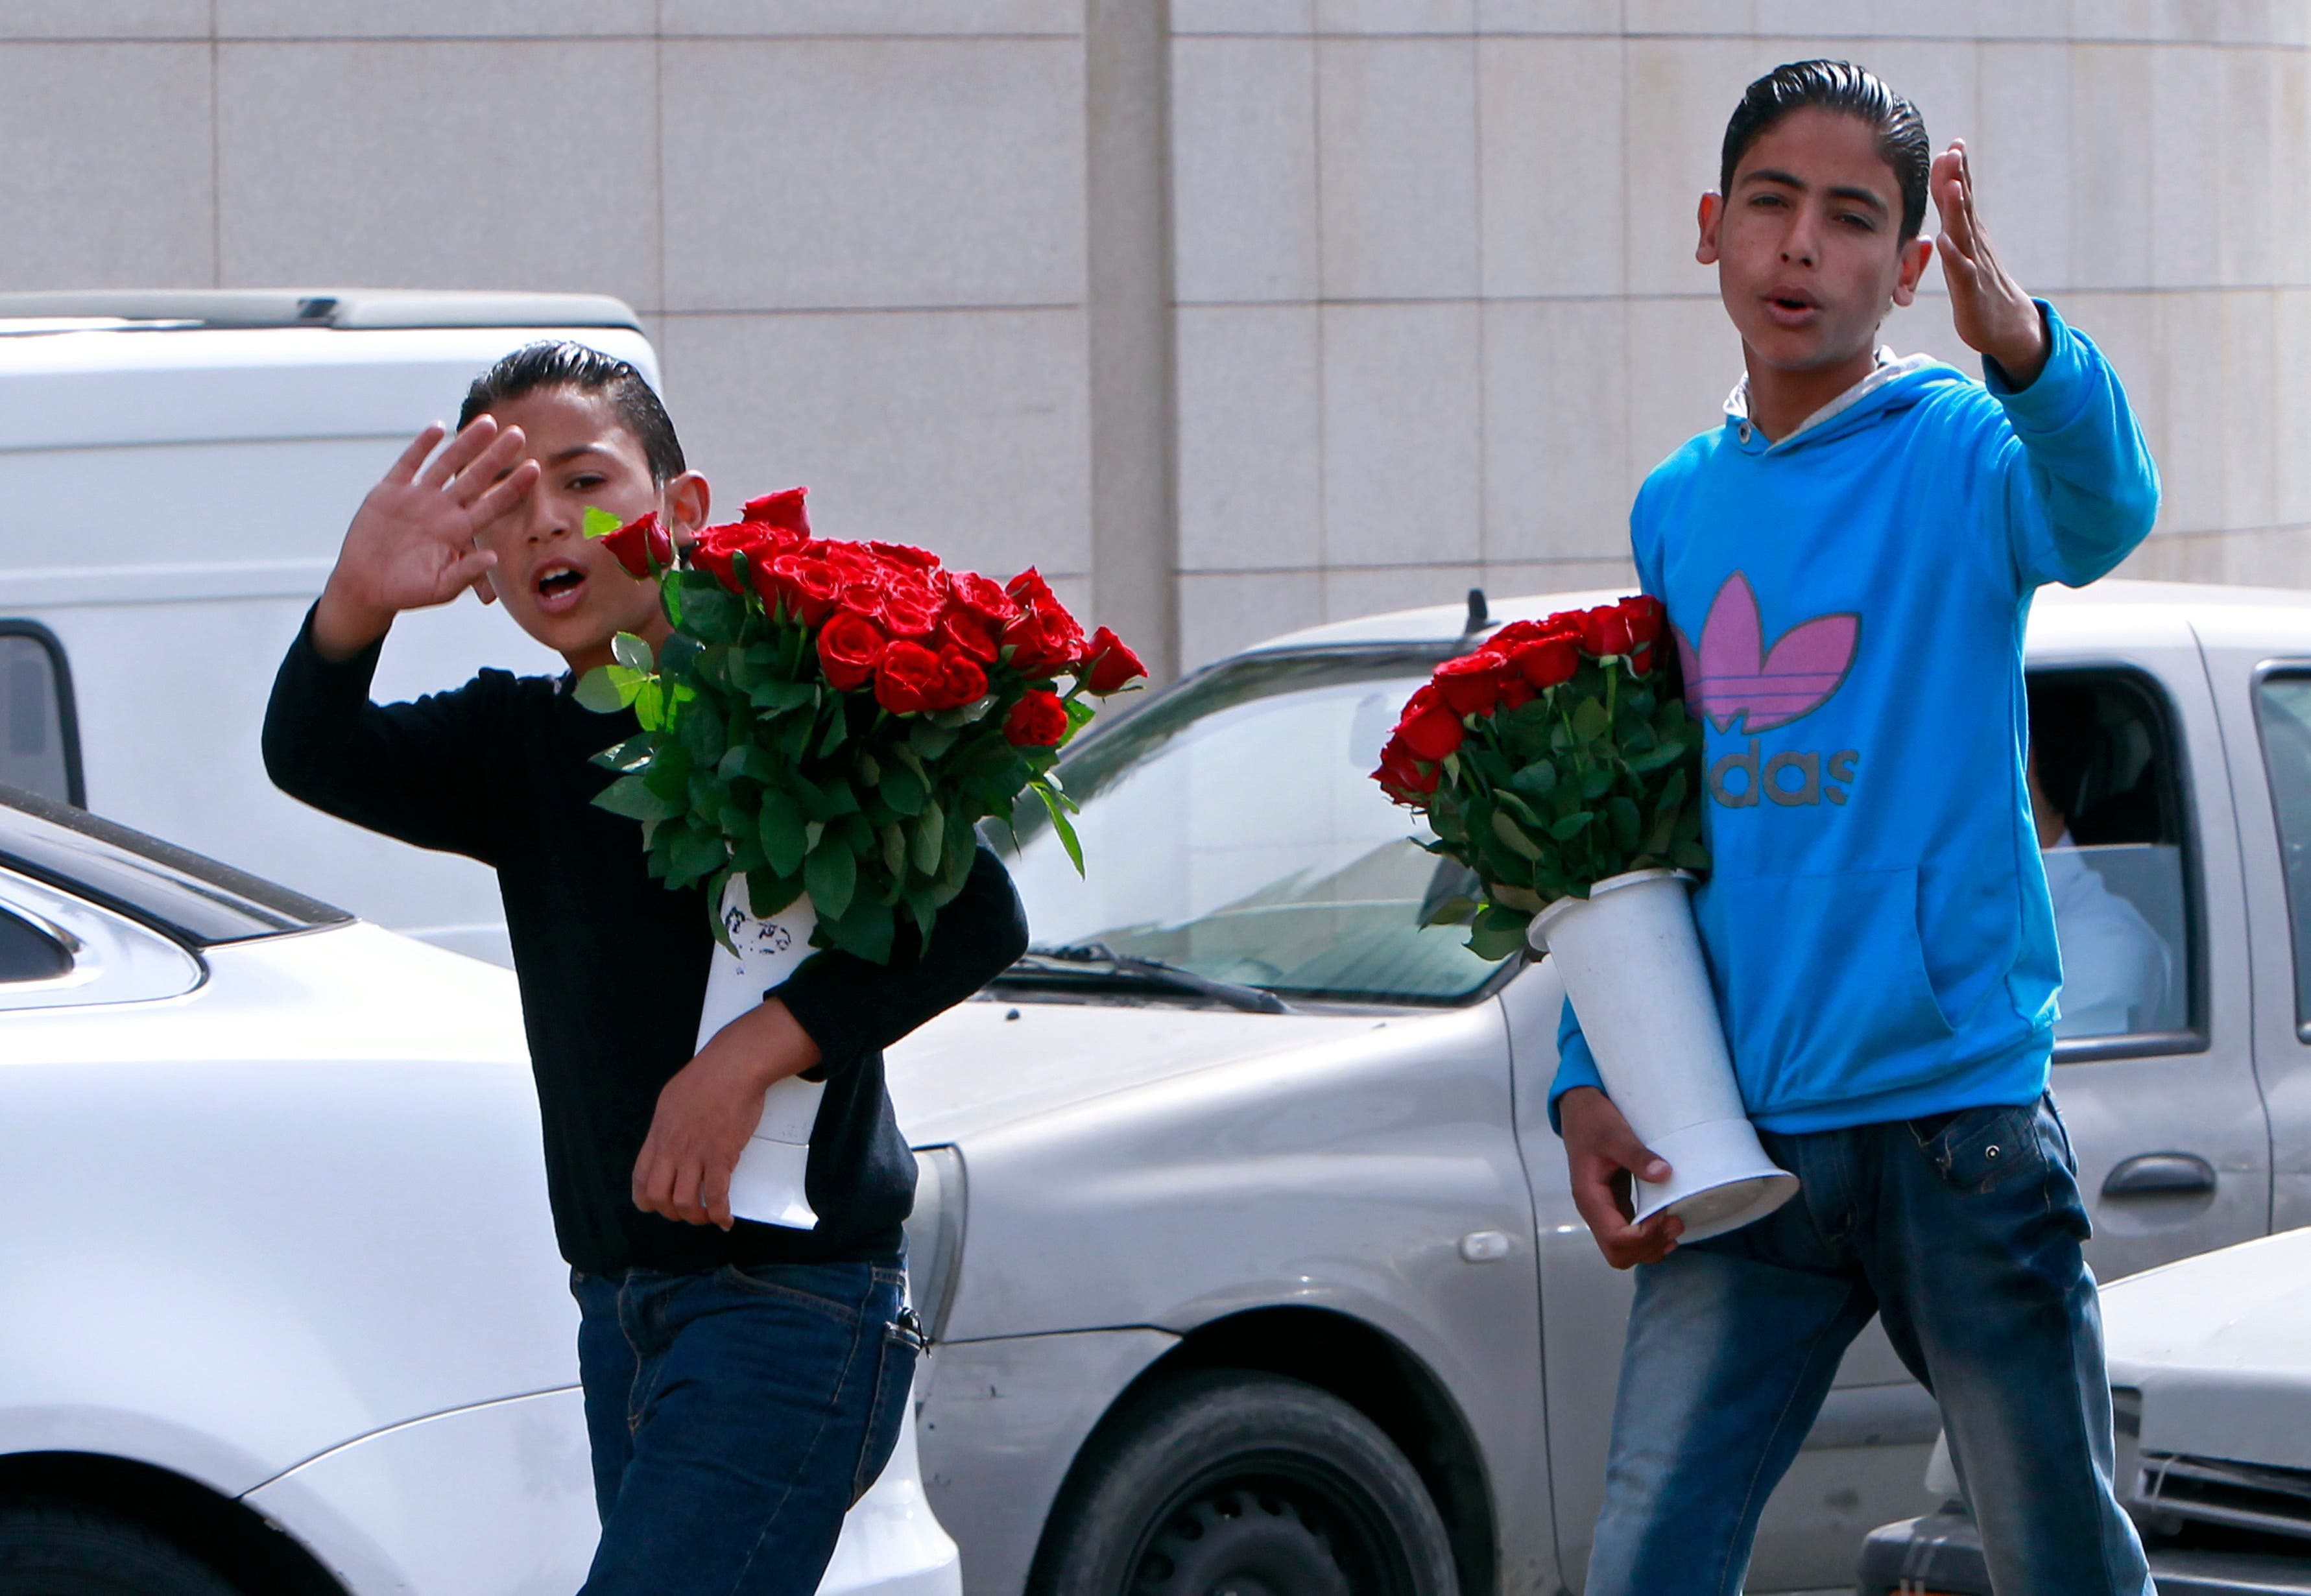 Two Syrian brothers Bashar, 12, left, and Rasem, 14, right, who fled their home from Hassakeh, try to sell flowers to make a living in Beirut, Lebanon, Wednesday, March 13, 2013. (AP)